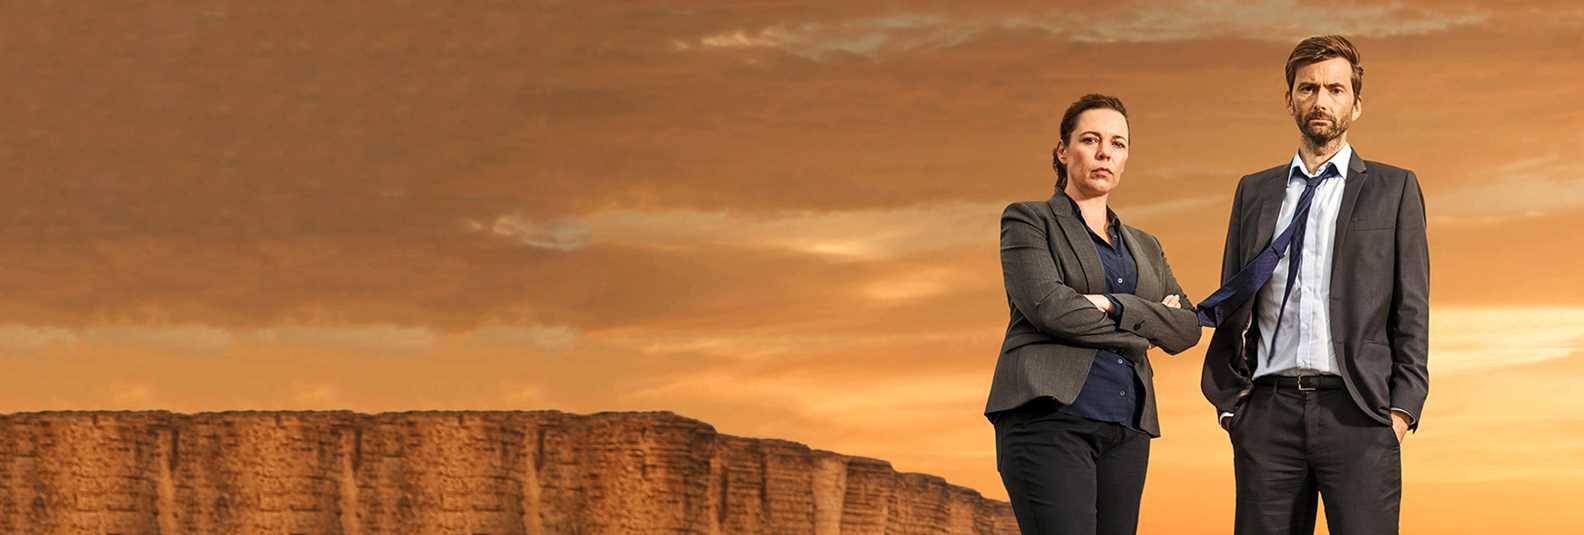 Why would you watch the last ever Broadchurch episode alone?